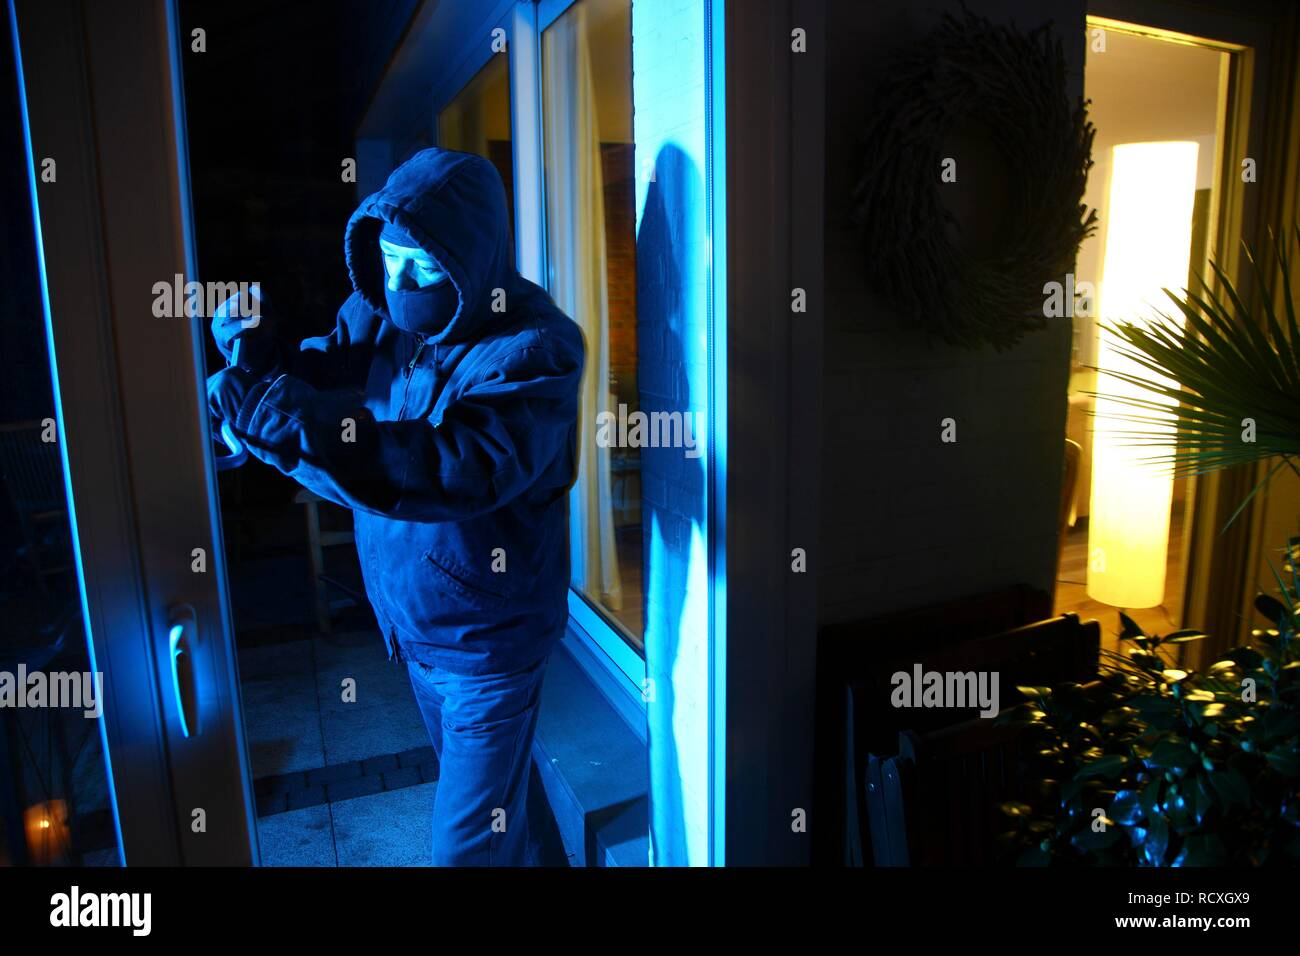 Burglar breaks open the patio door with a crowbar, symbolic image for domestic burglary - Stock Image